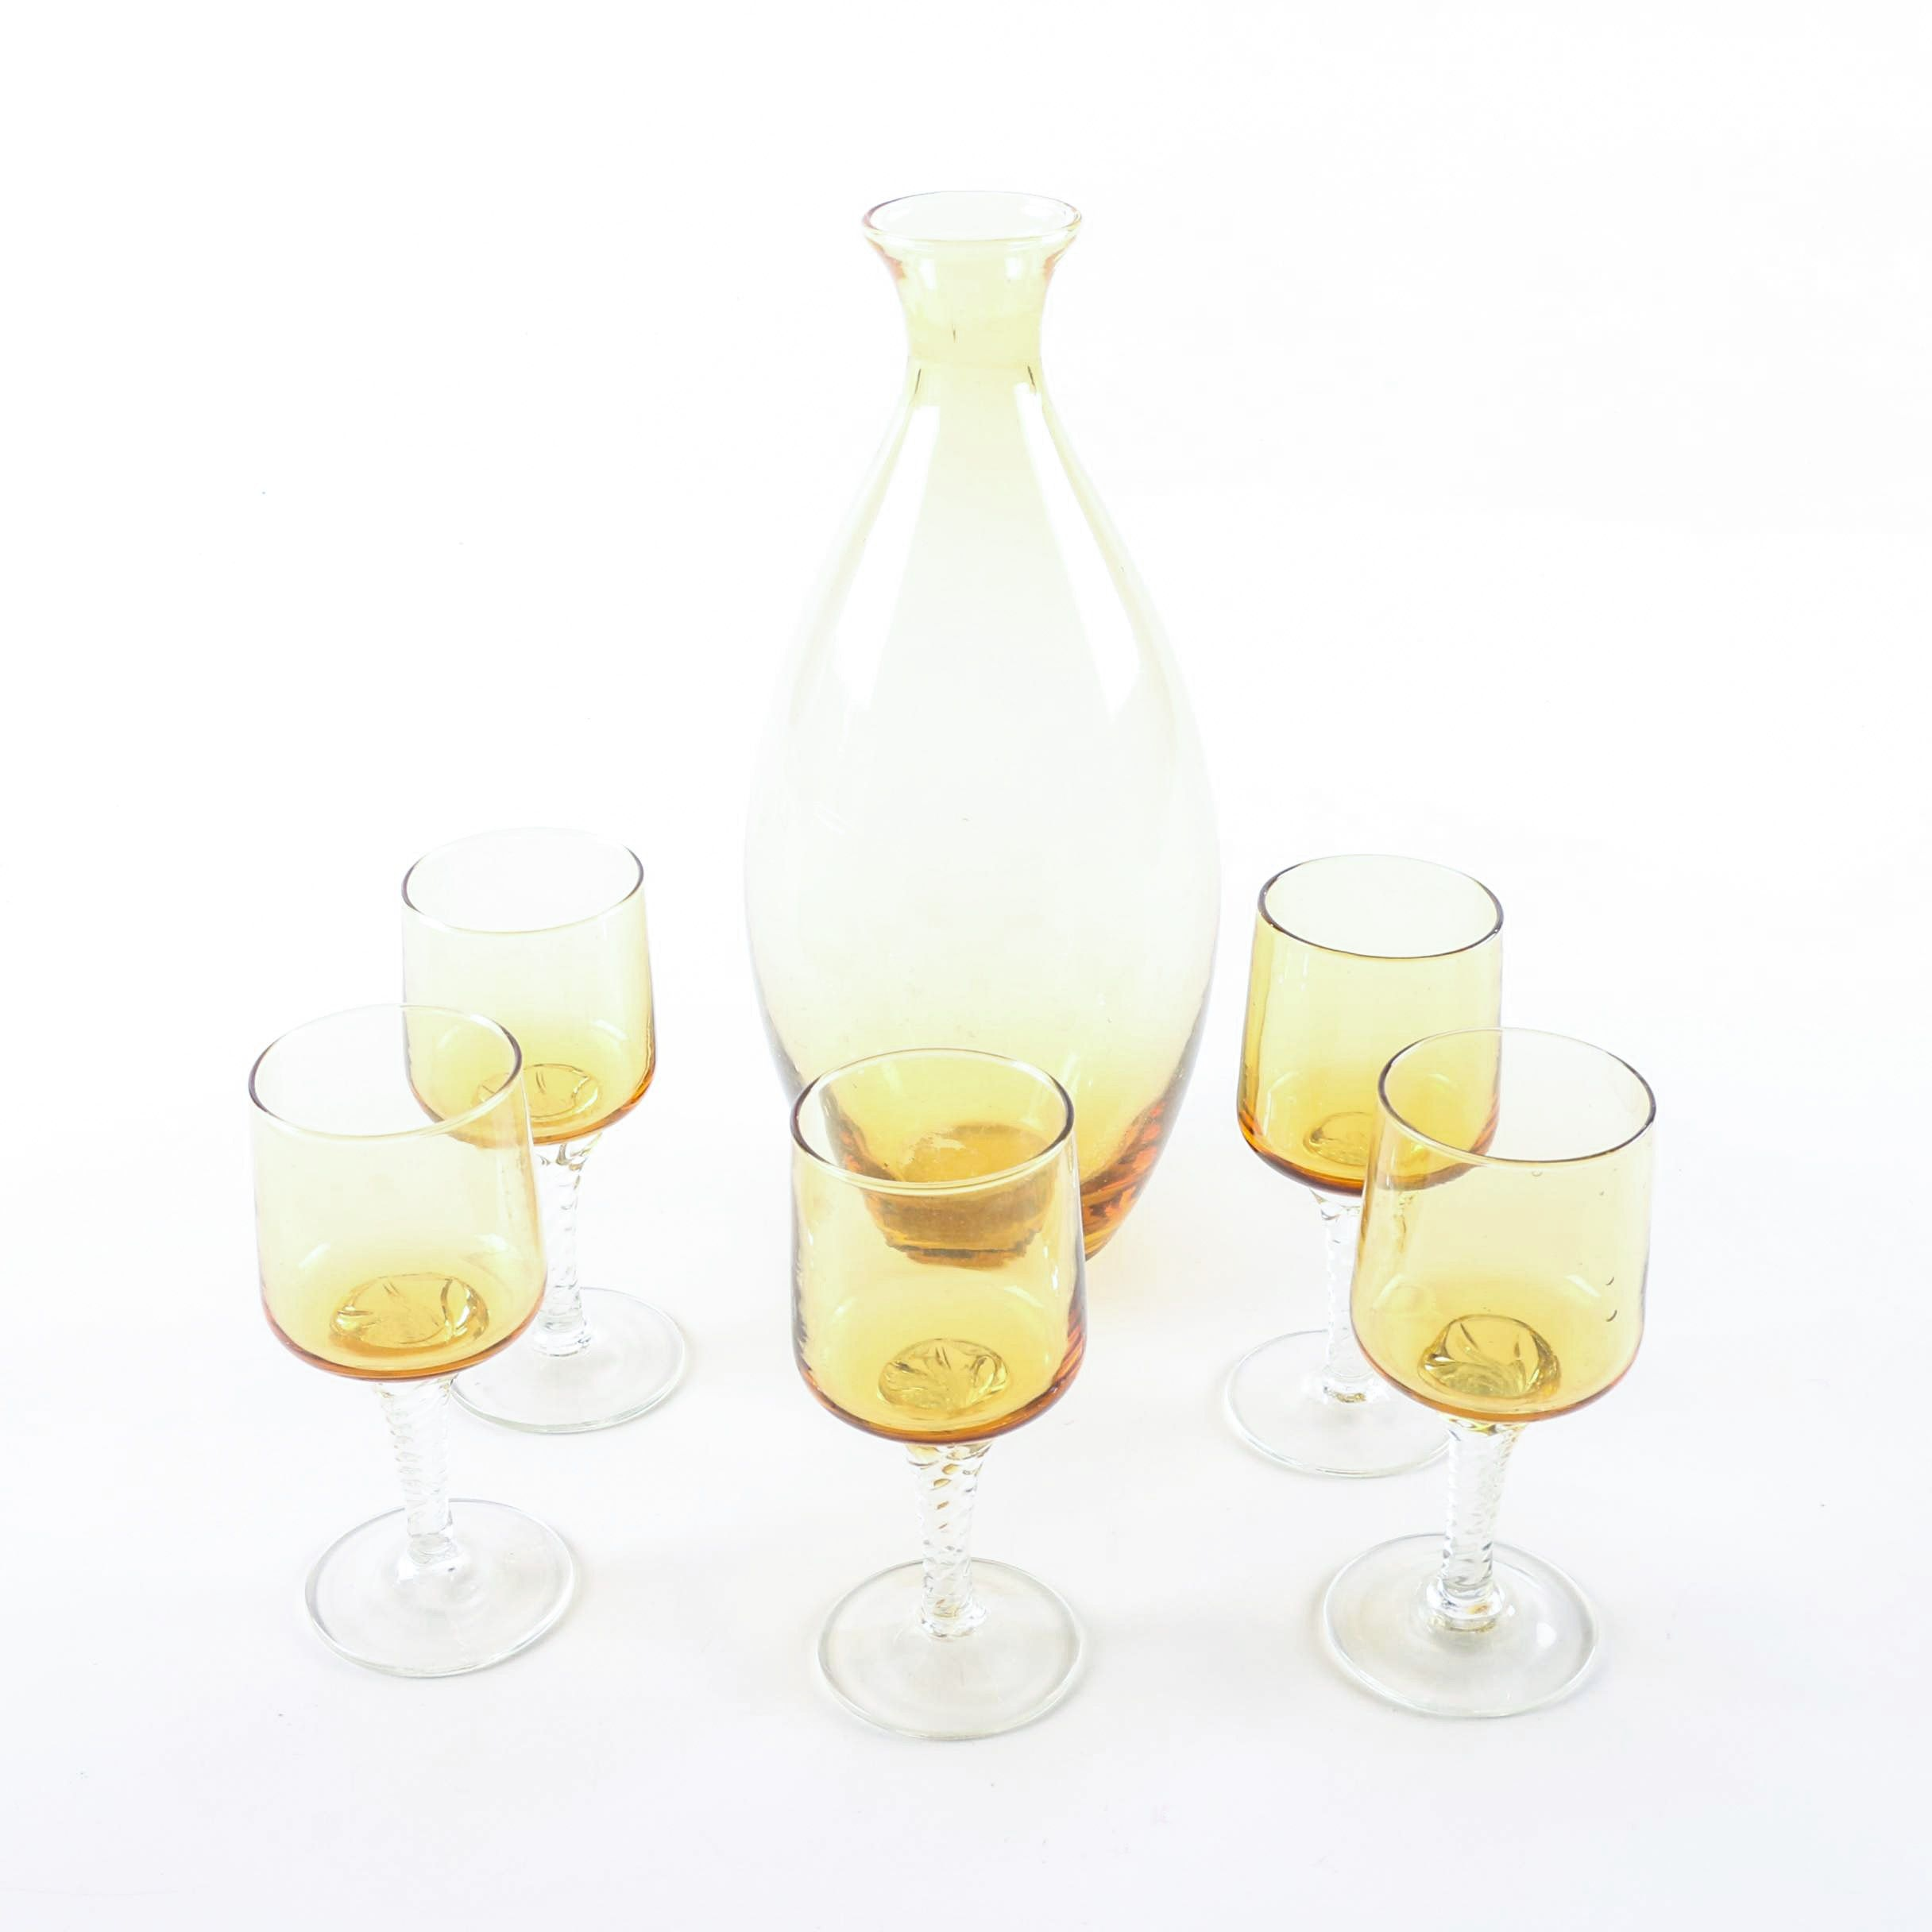 Amber Glass Decanter with Cordial Glasses